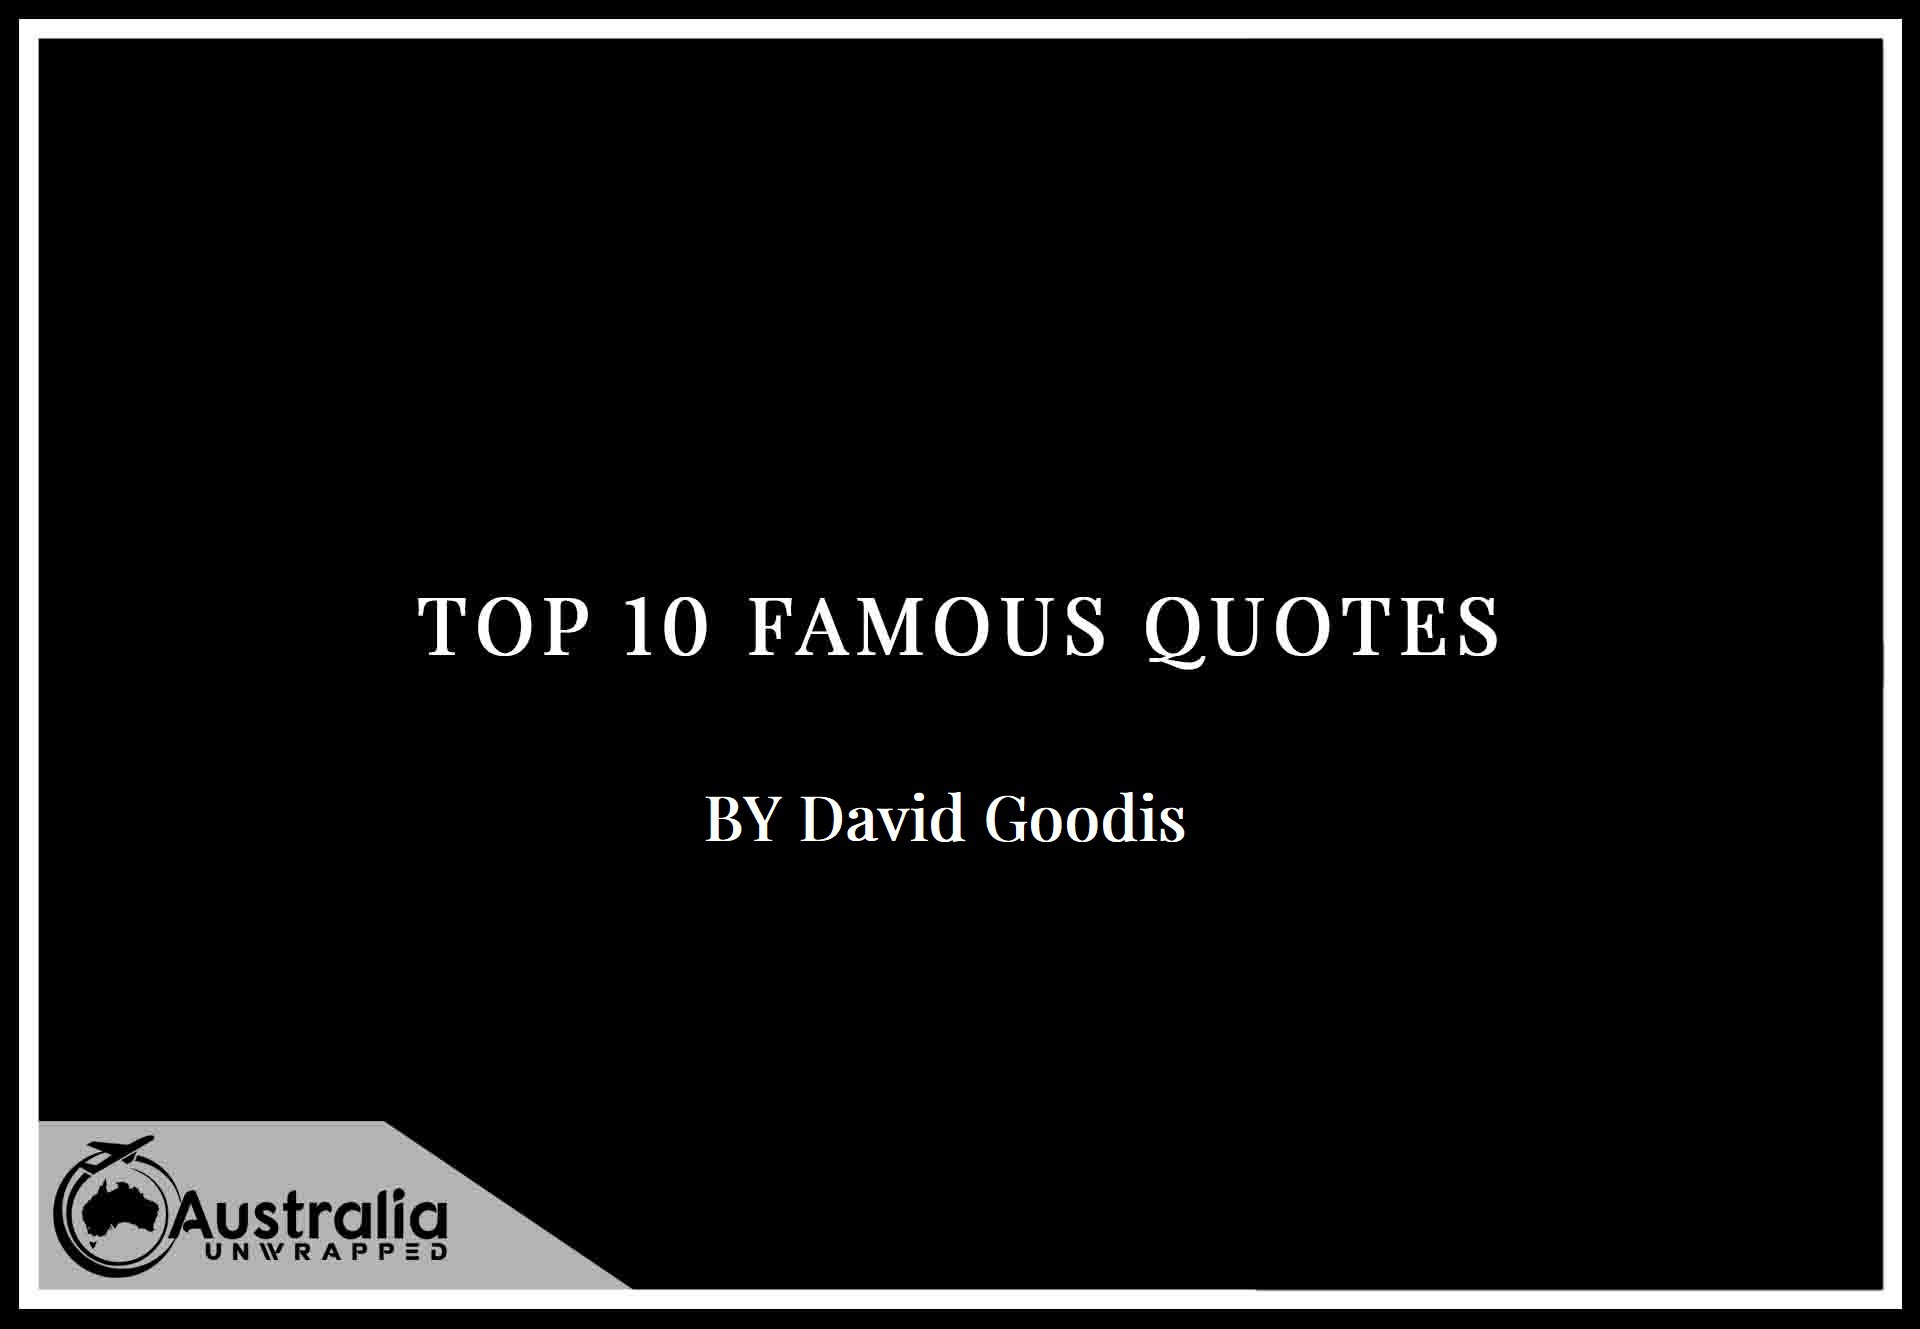 Top 10 Famous Quotes by Author David Goodis